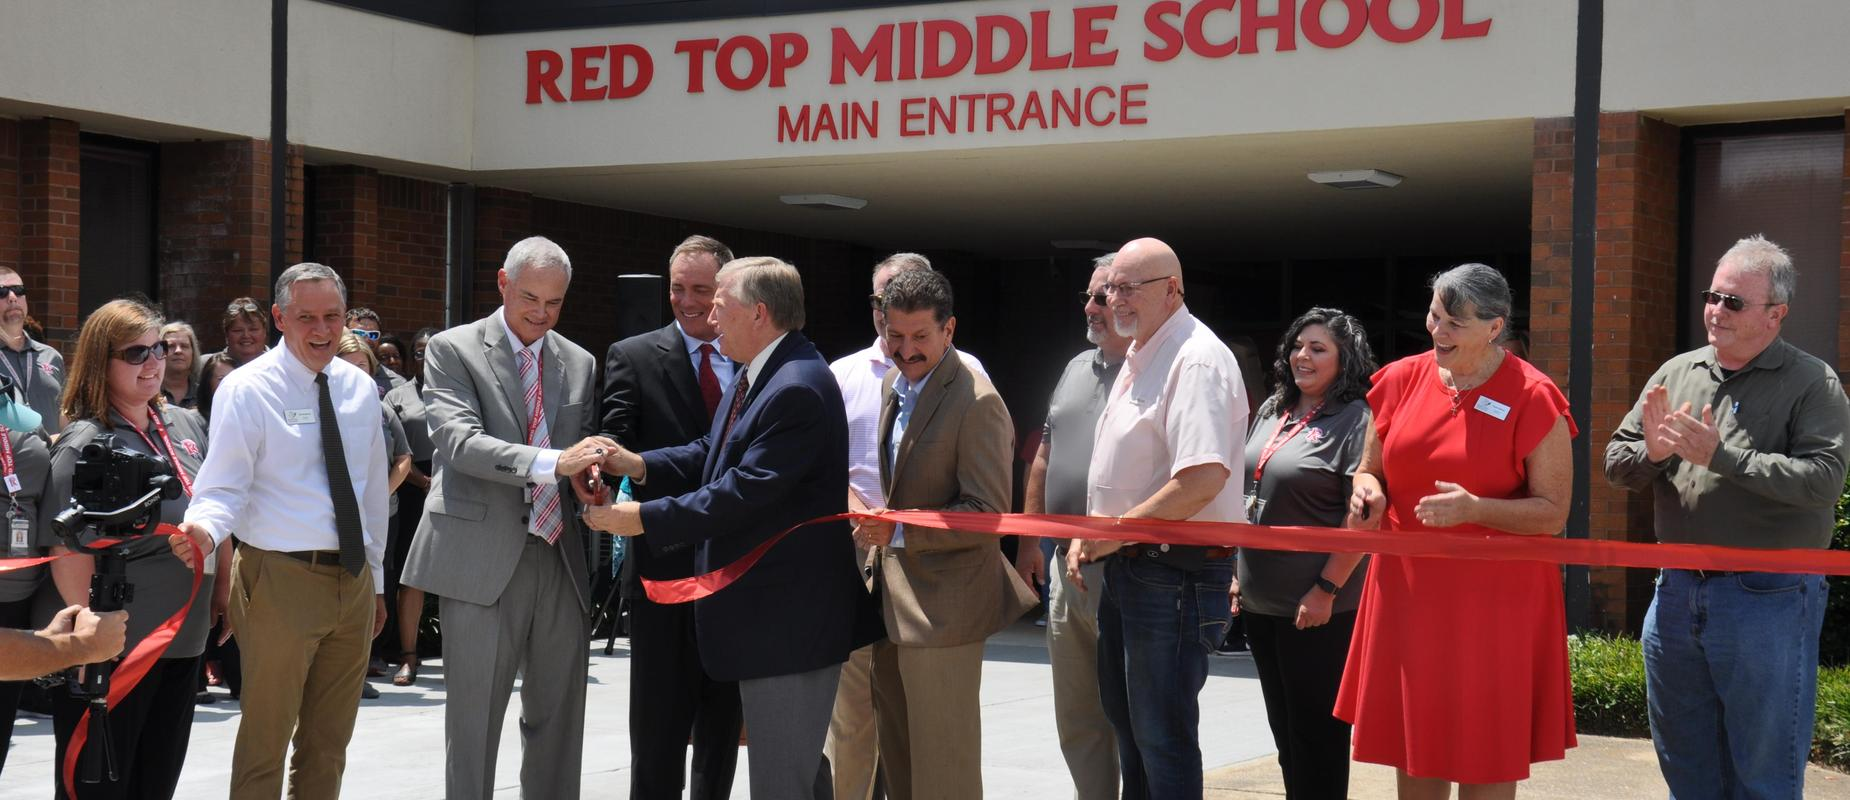 Red Top Middle School Ribbon Cutting ceremony